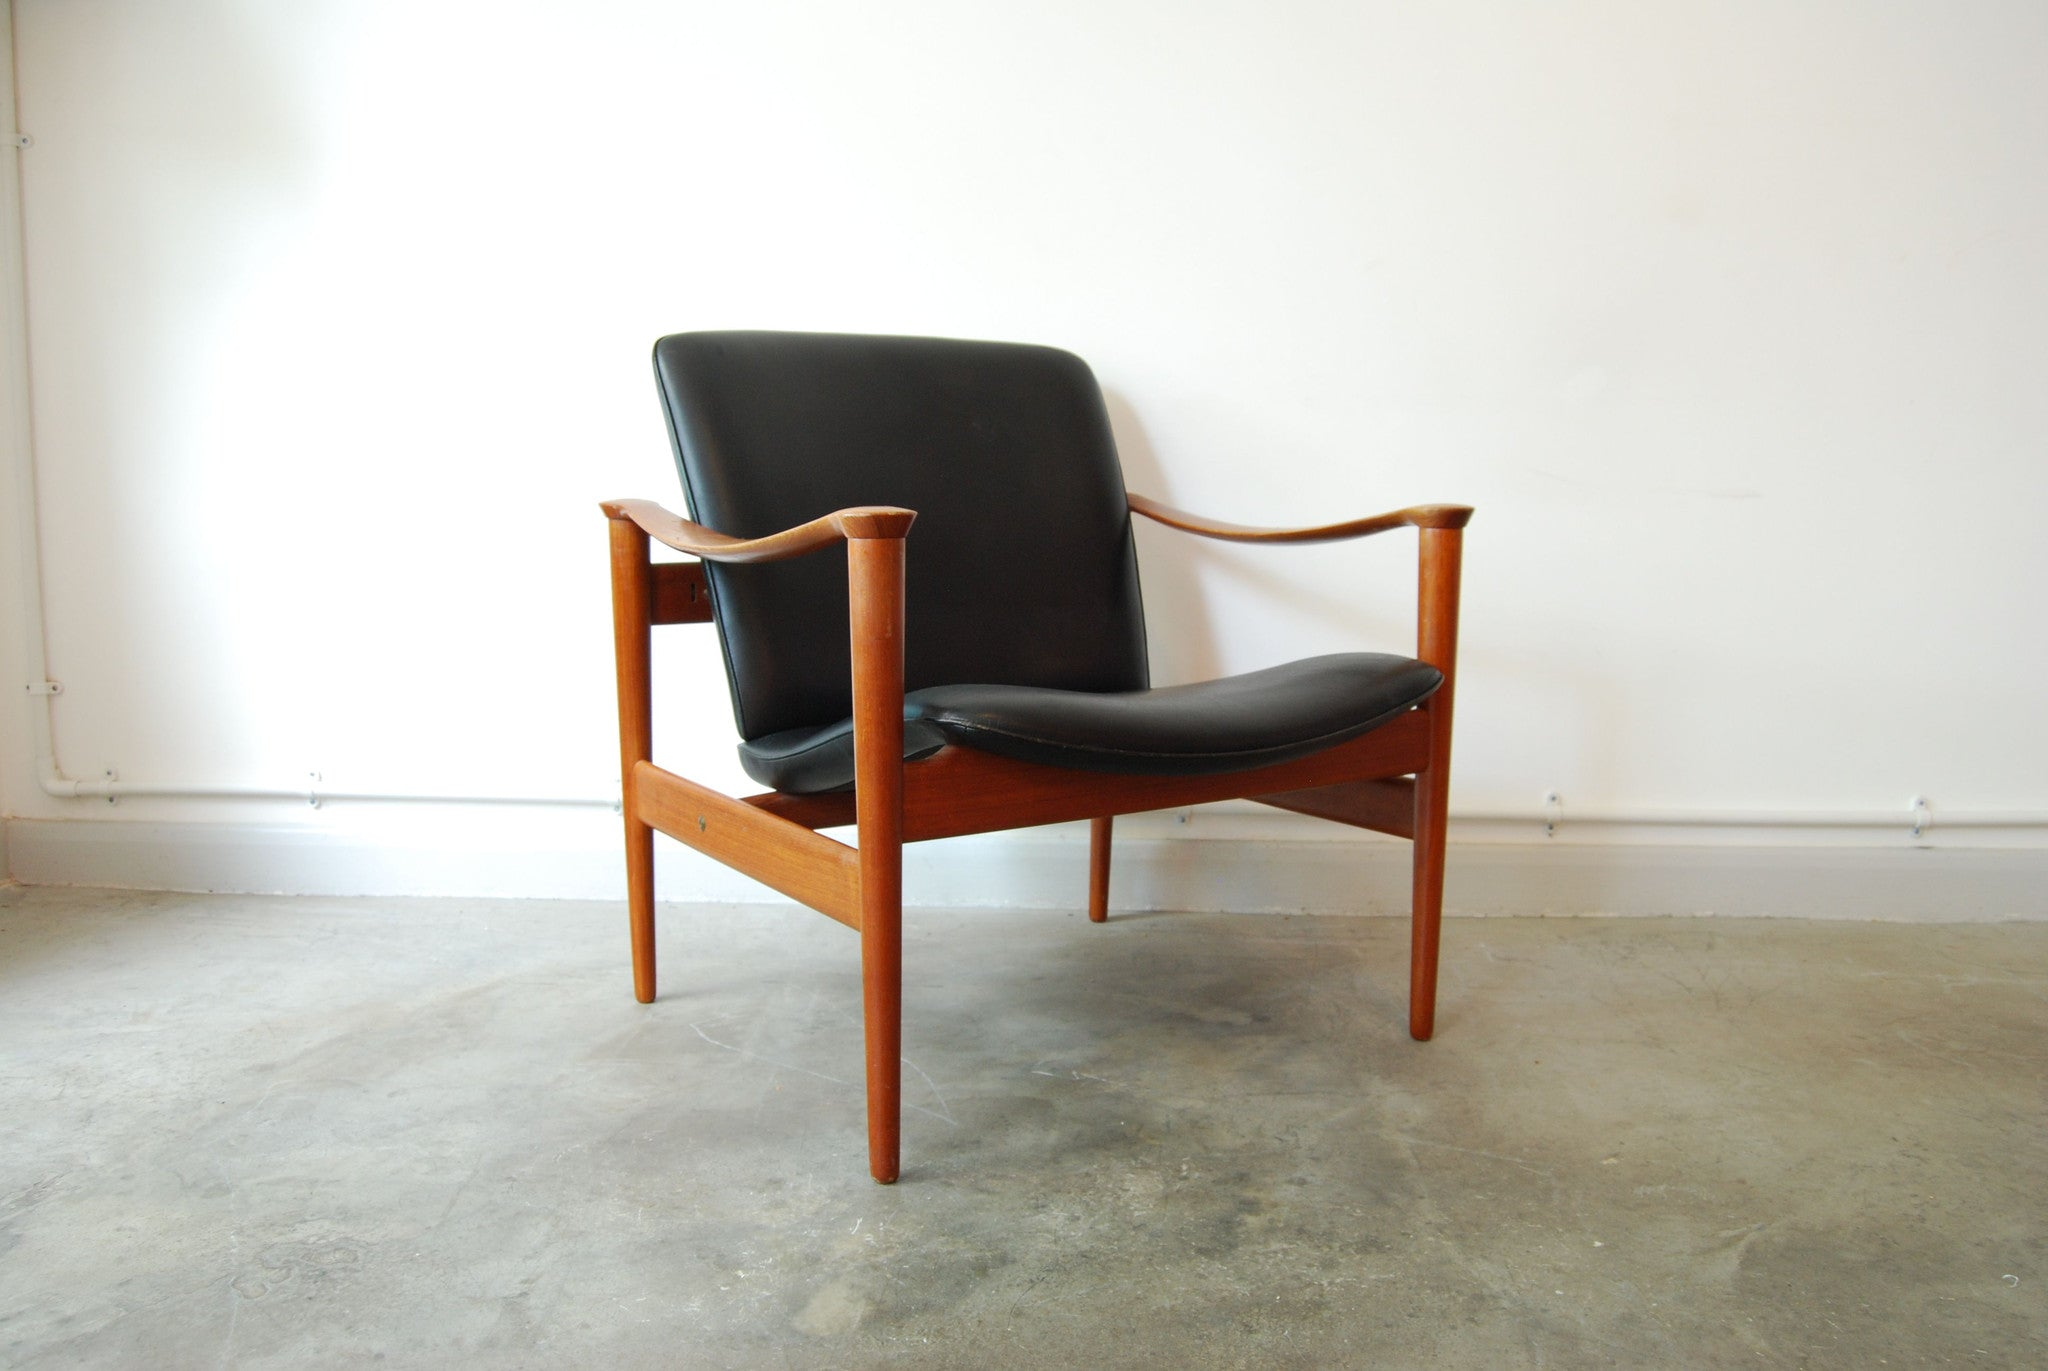 Chase & Sorensen Teak and leather lounge chair by Frederik Kayser